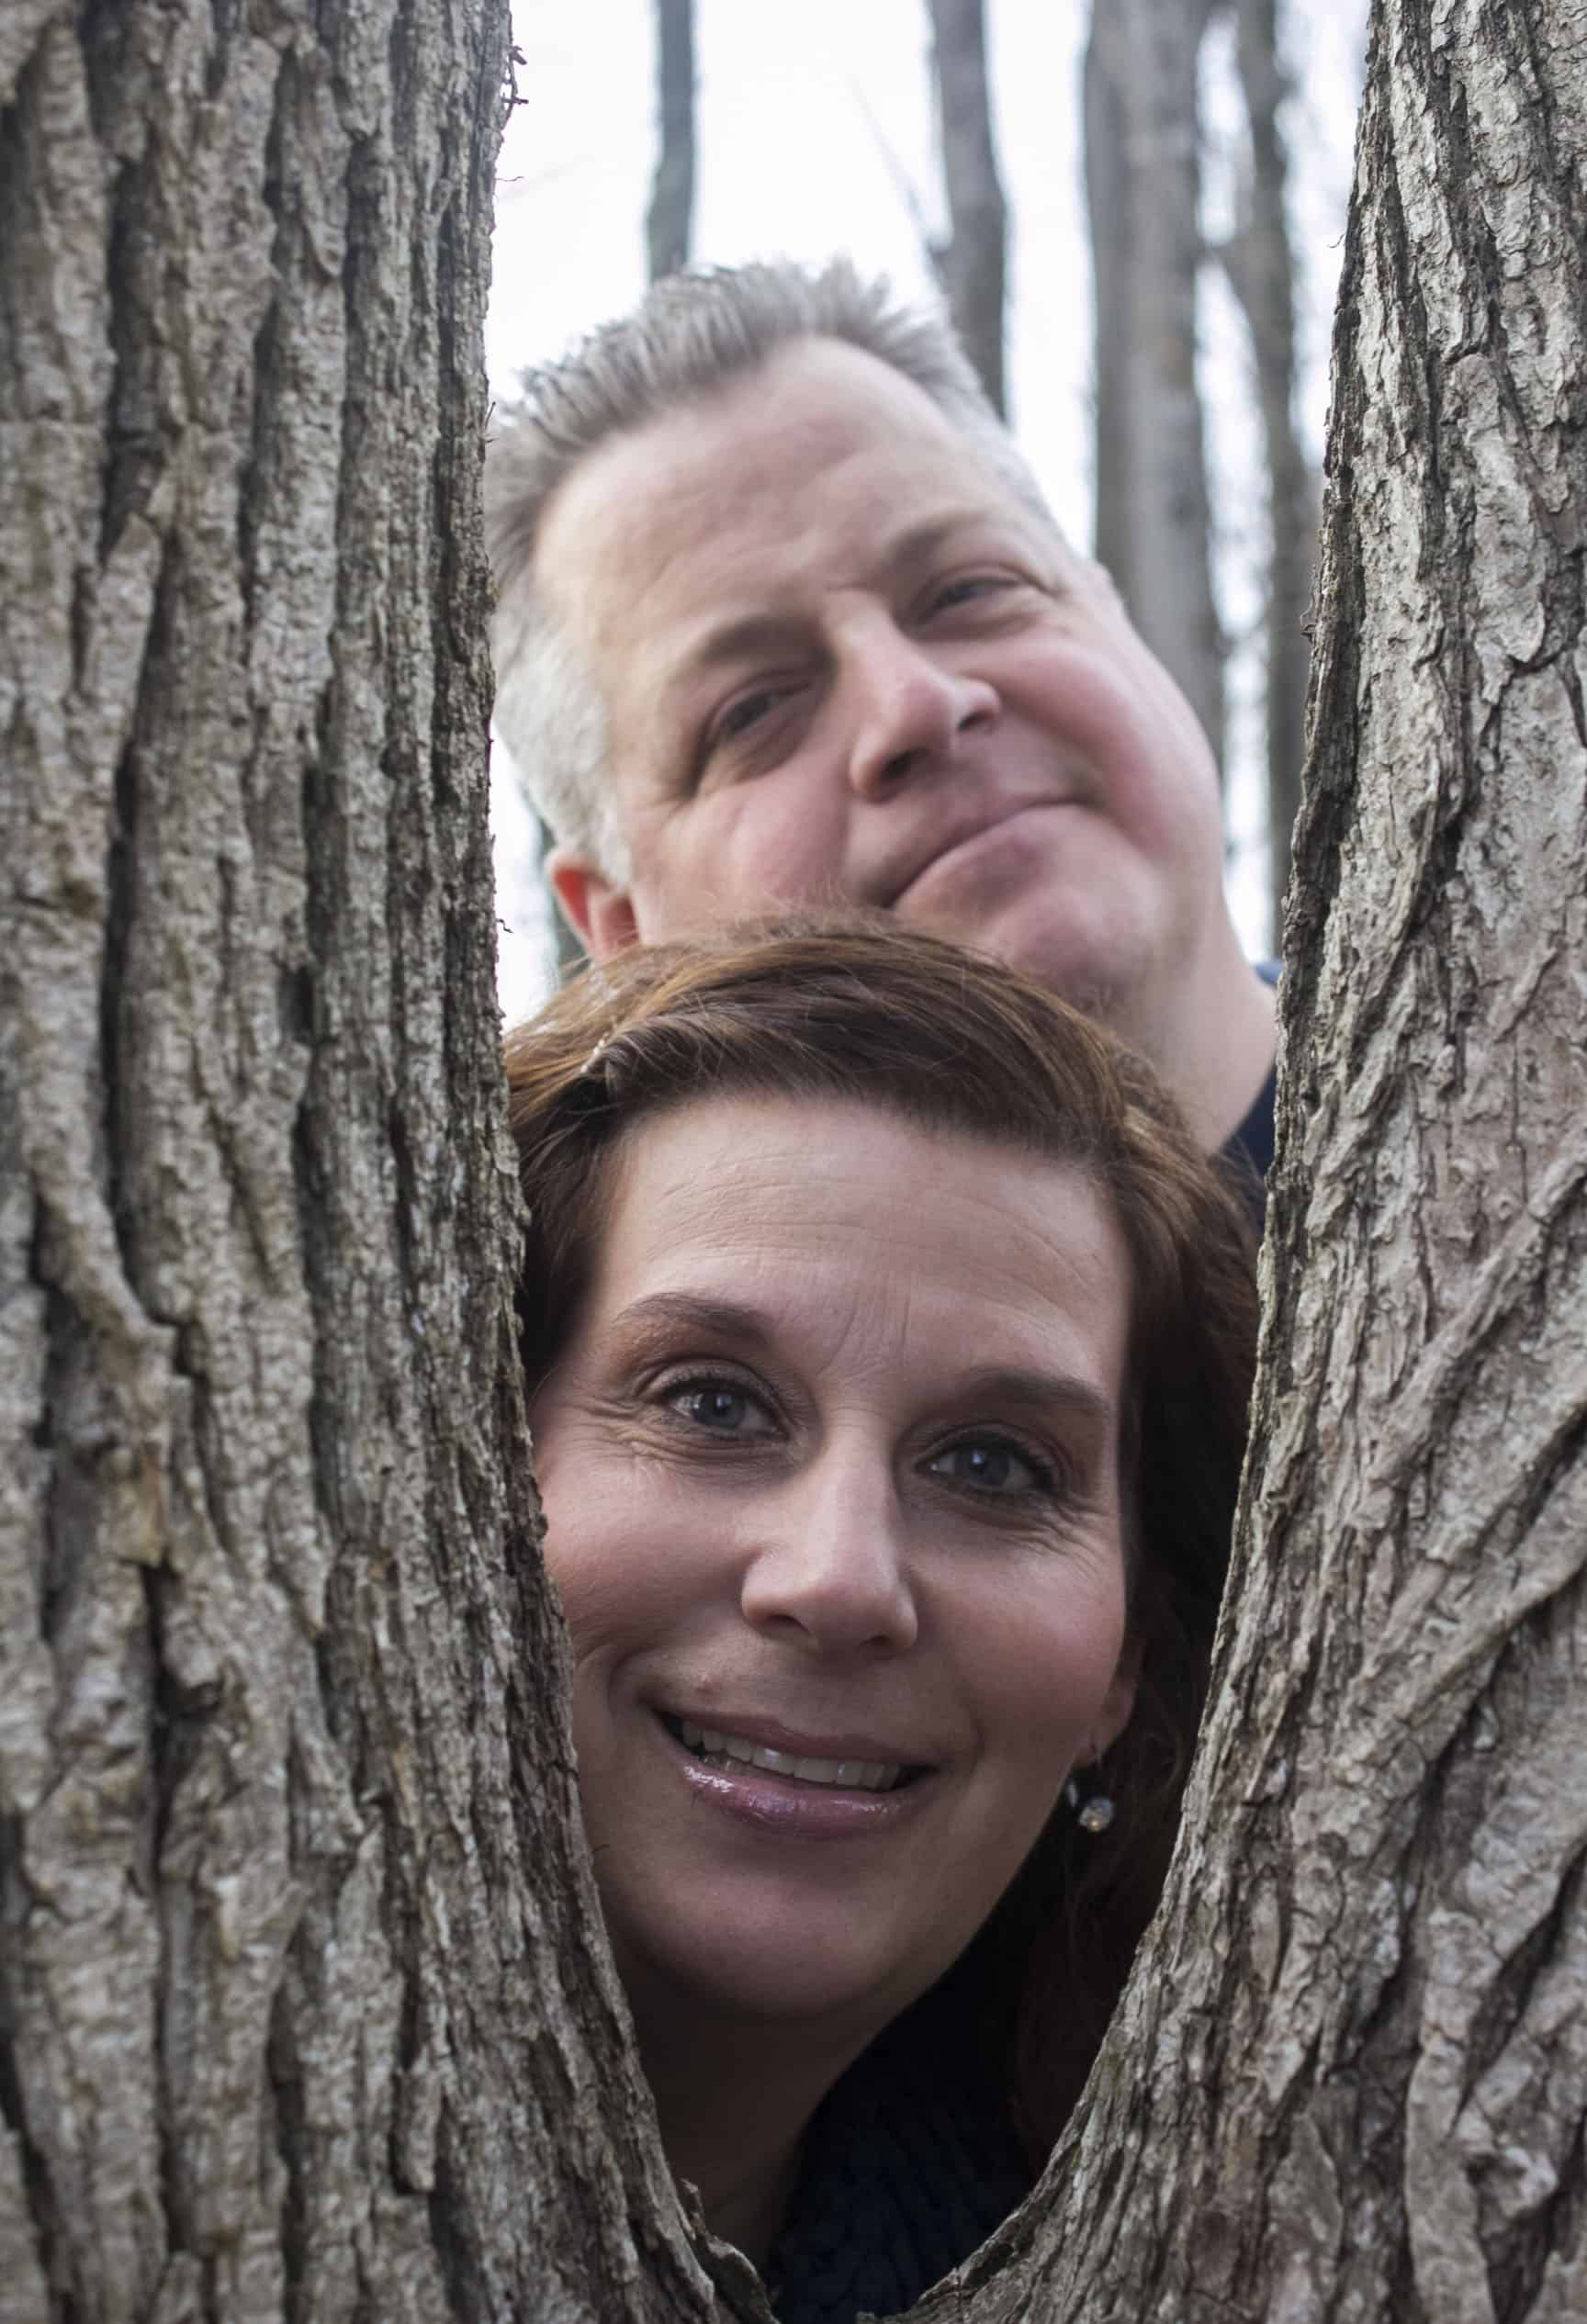 parents portrait outdoors in nature